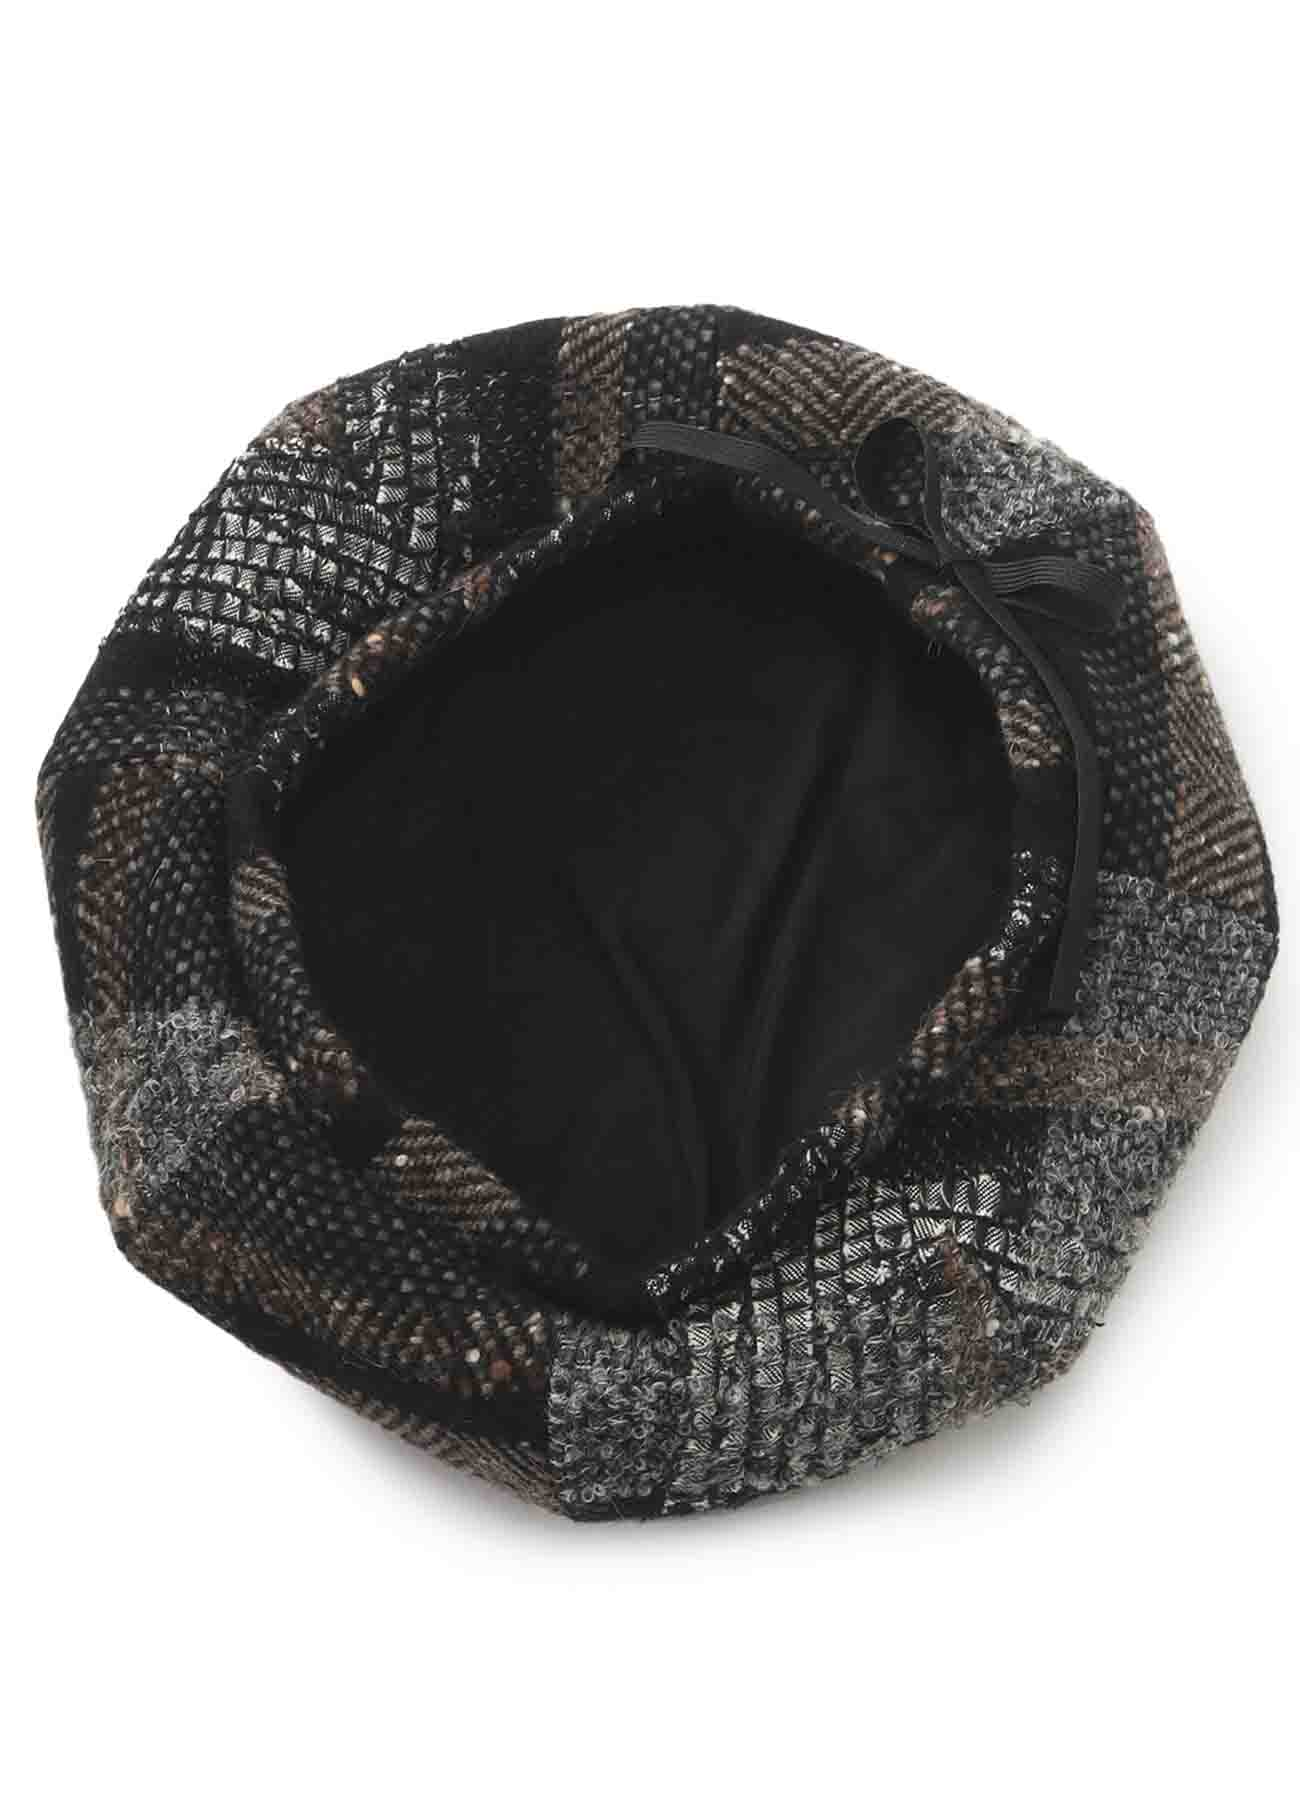 TAPE TWEED DARTS BERET